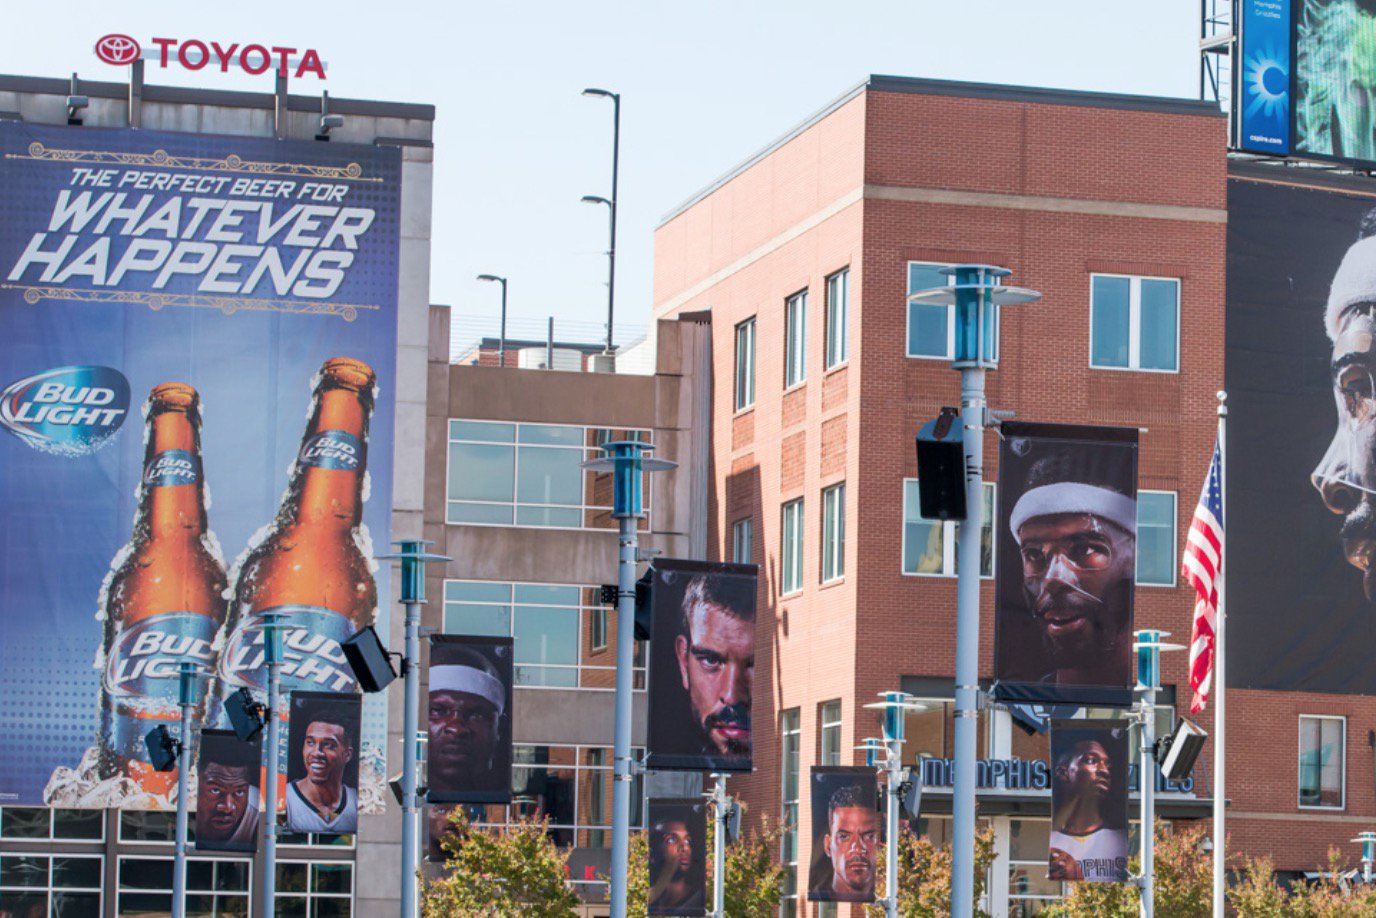 Fedexforum On Twitter Spending New Years Downtown Park At